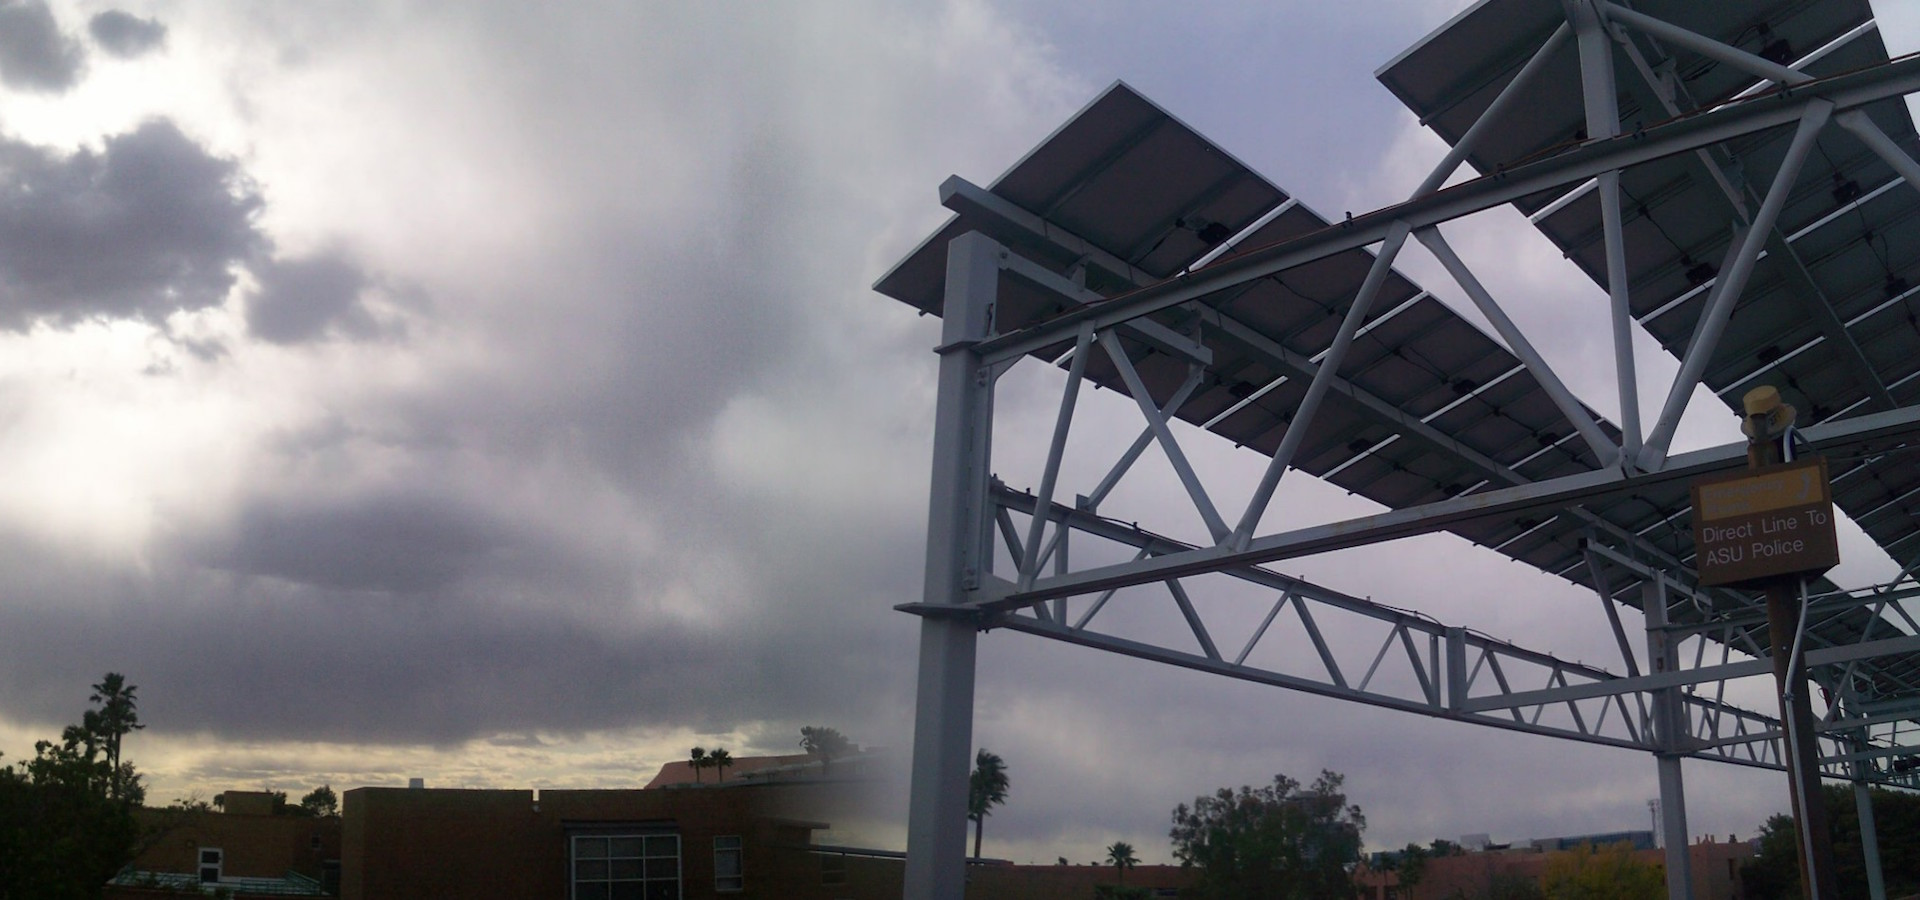 solar installation with stormclouds behind